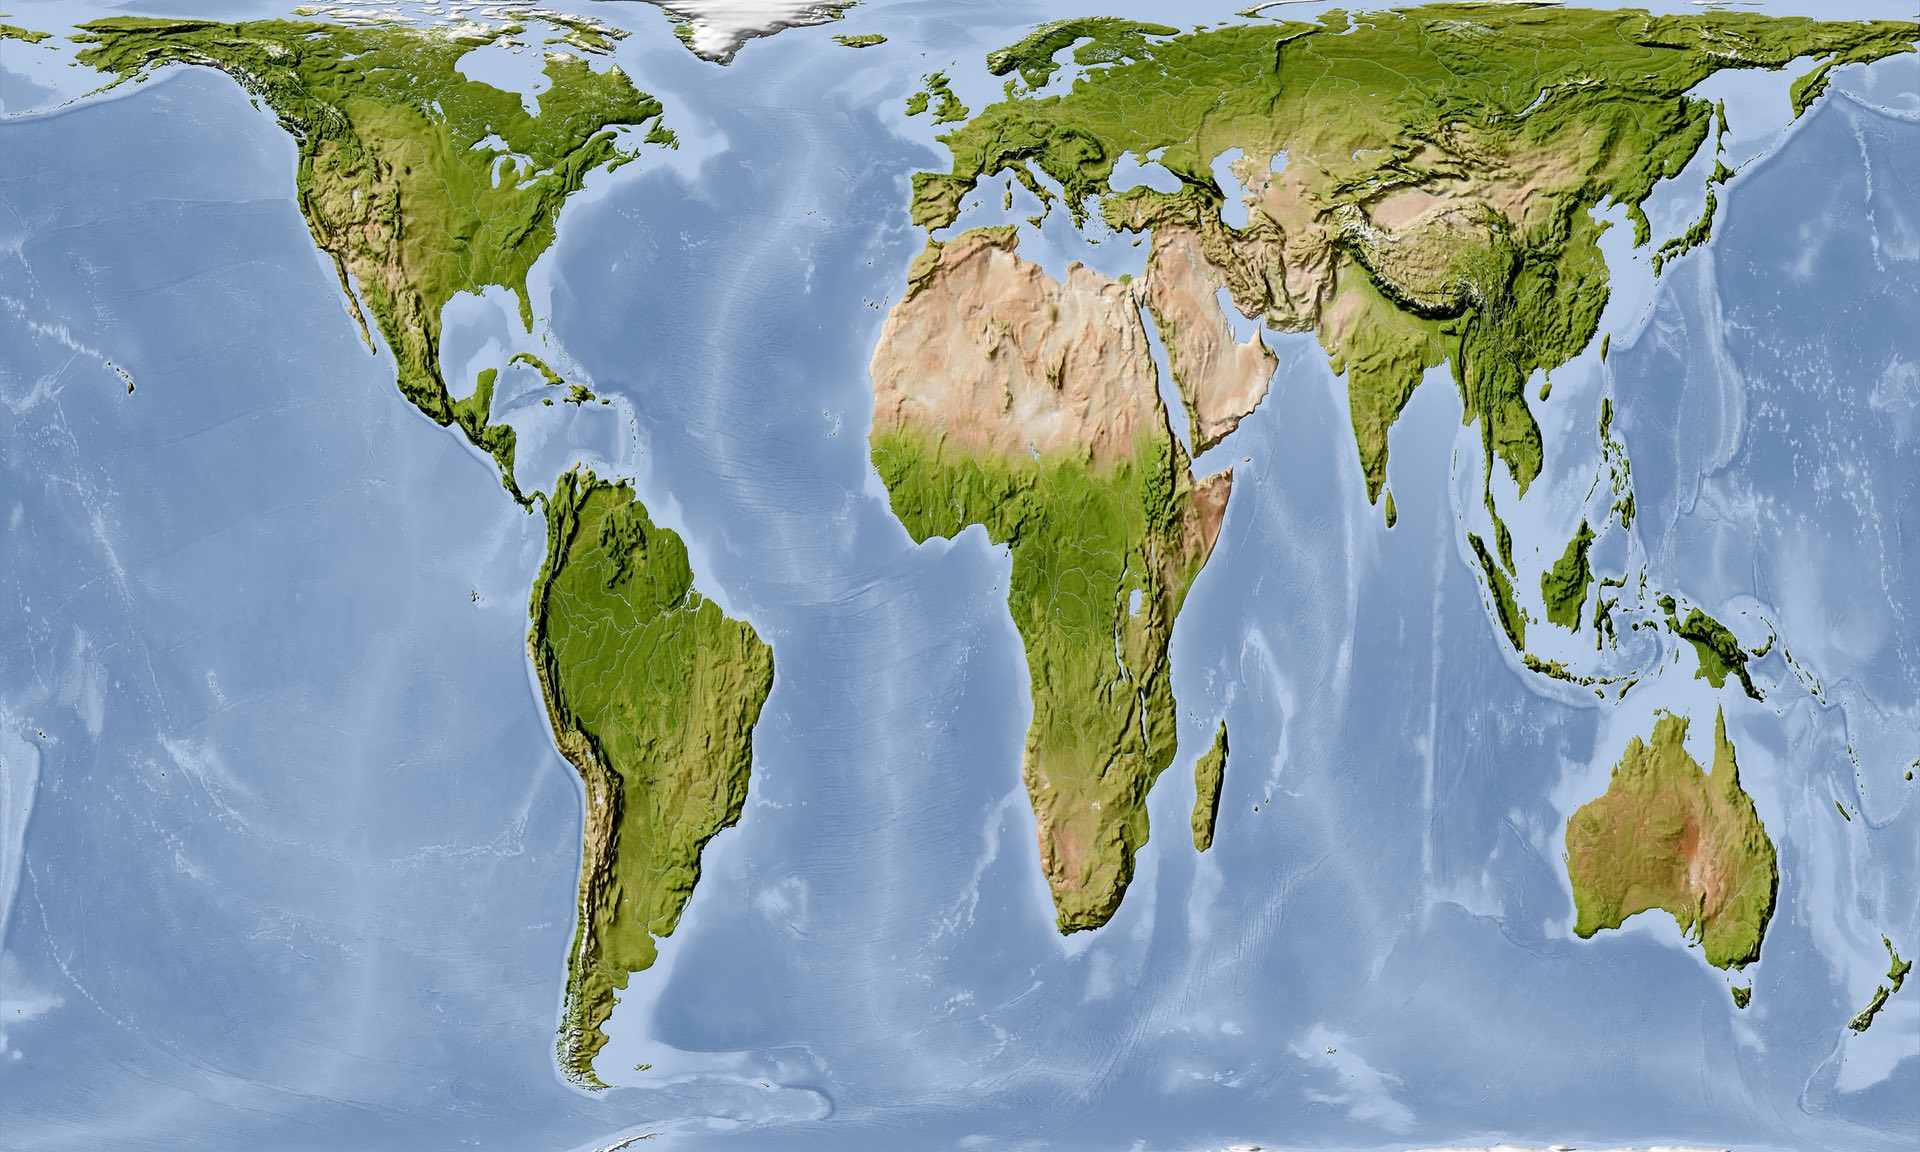 MessageBase 5.0 - Undistorted Map of the Earth